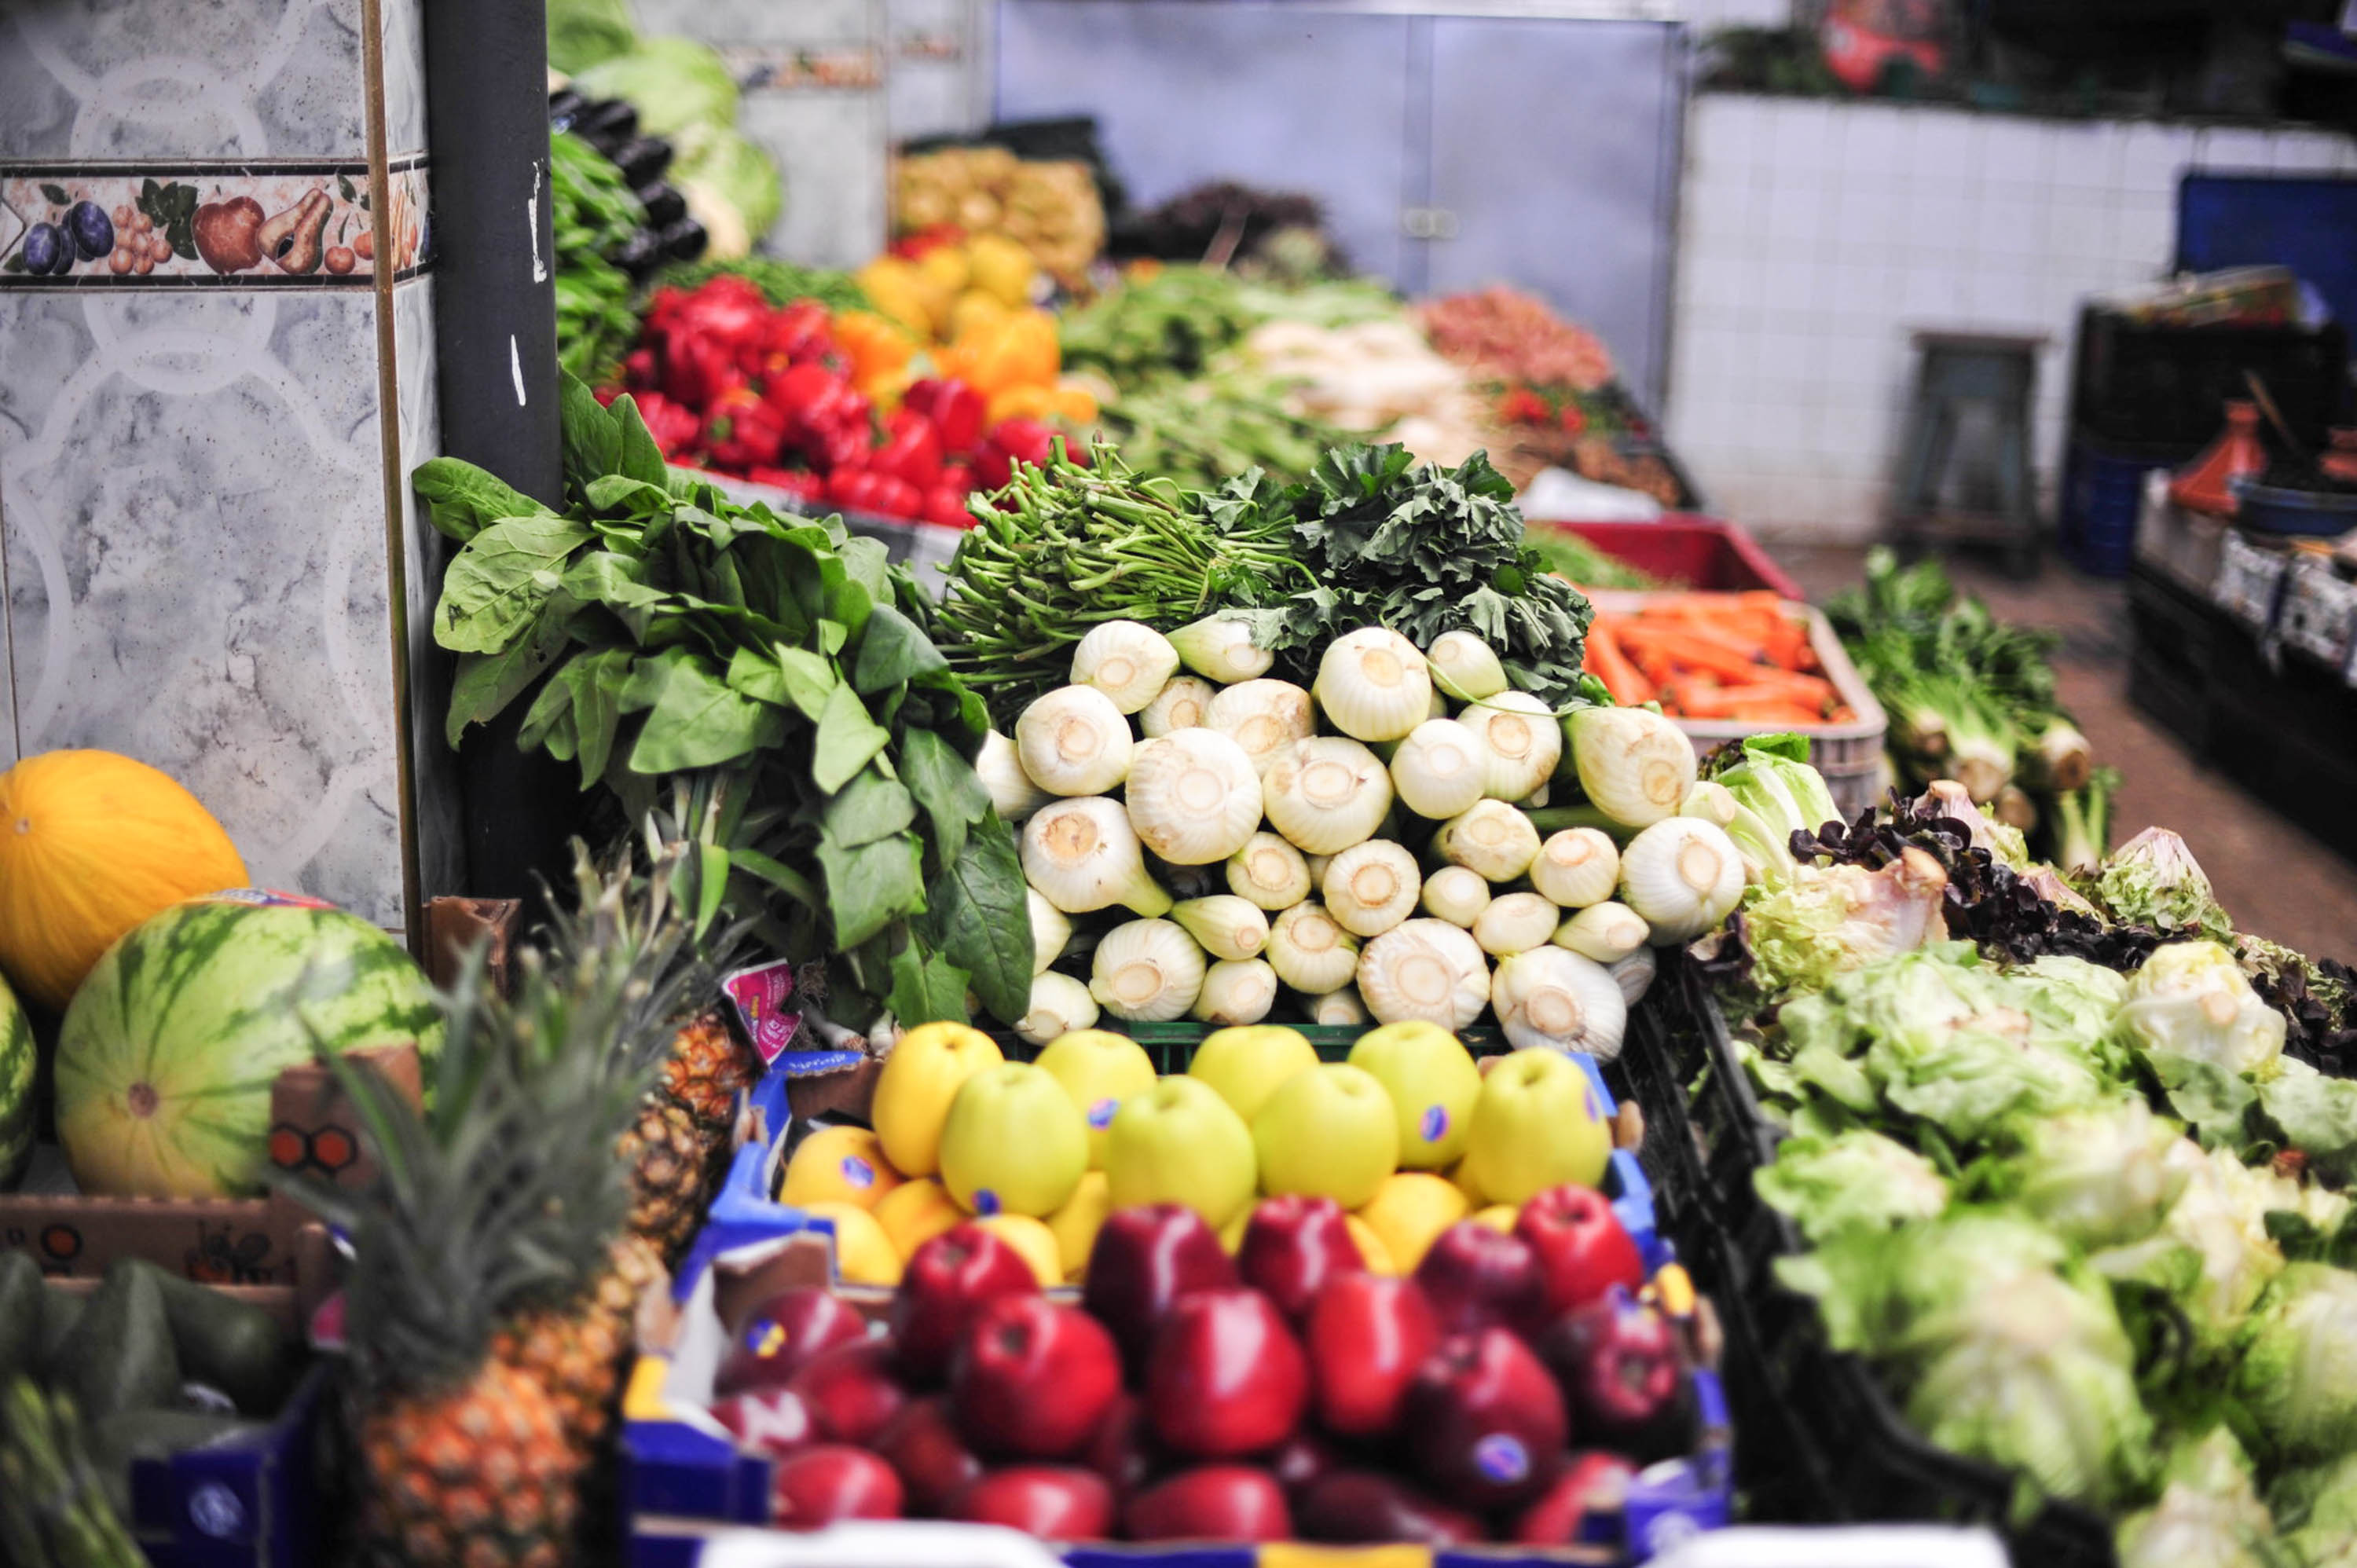 Produce at the market   Marrakech: a quick guide